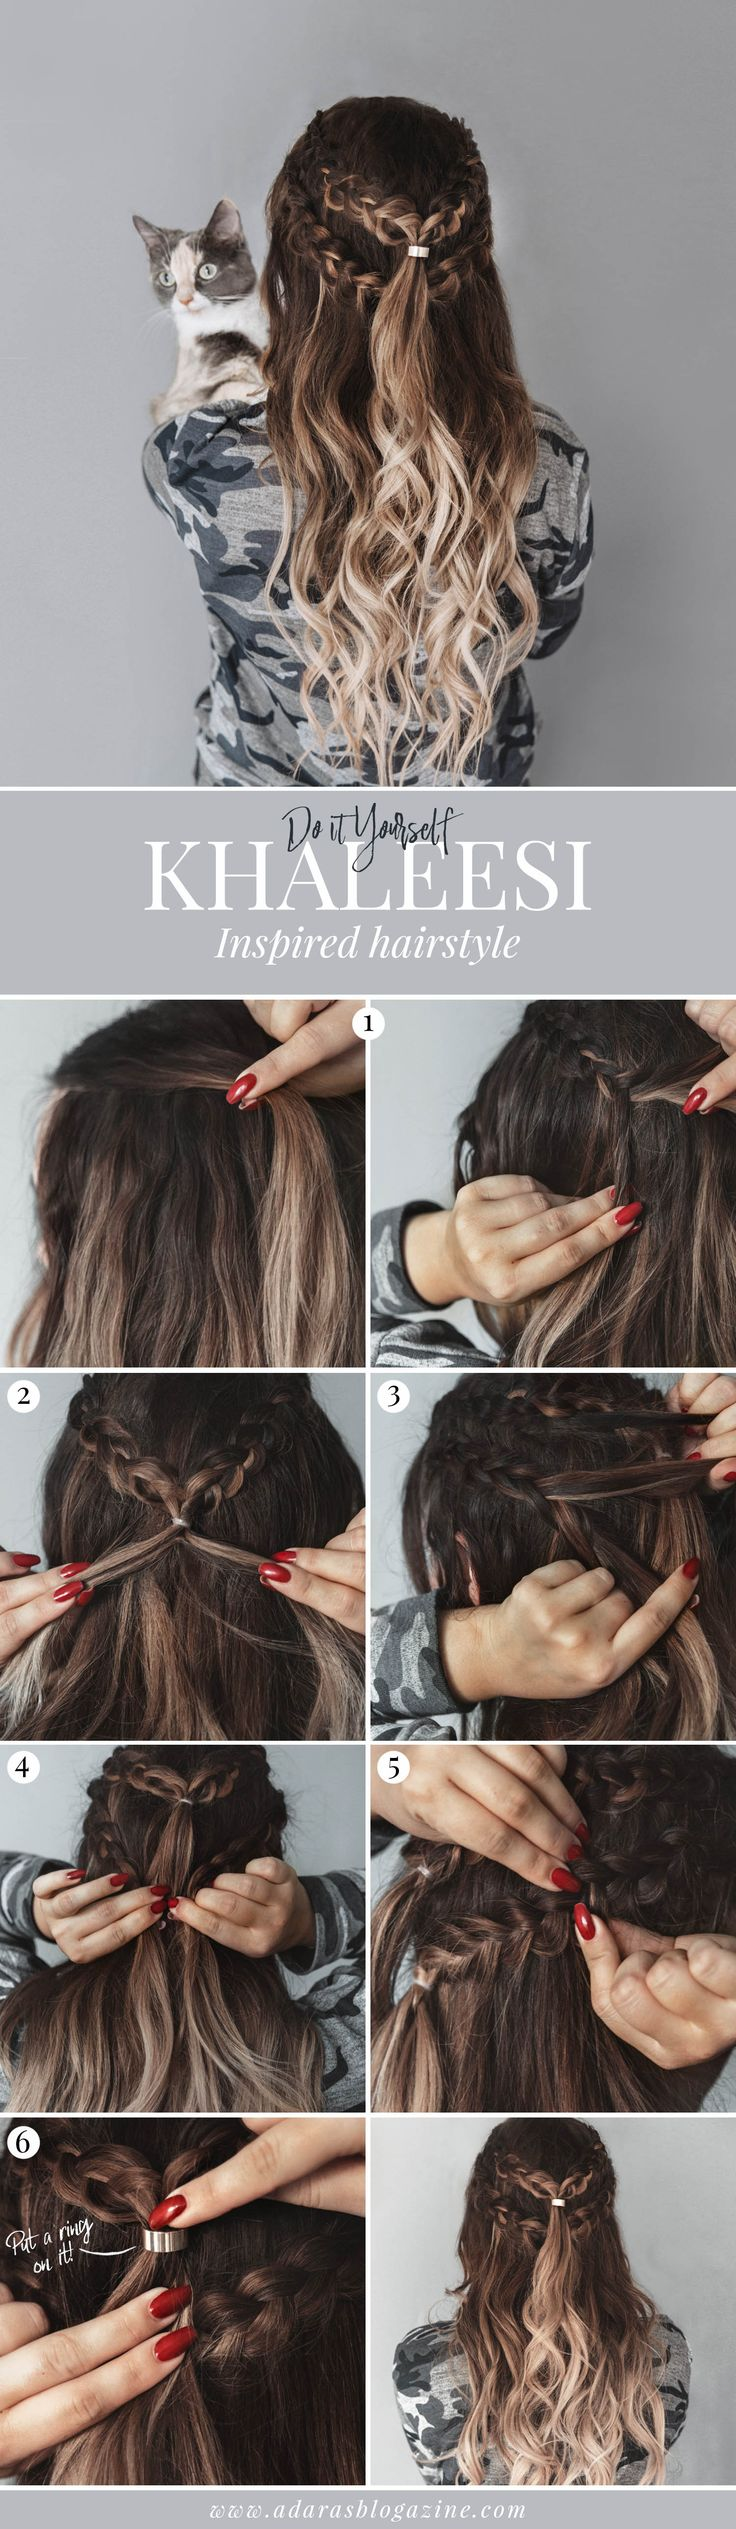 cute hairstyles if you even ever have time in the mornings!